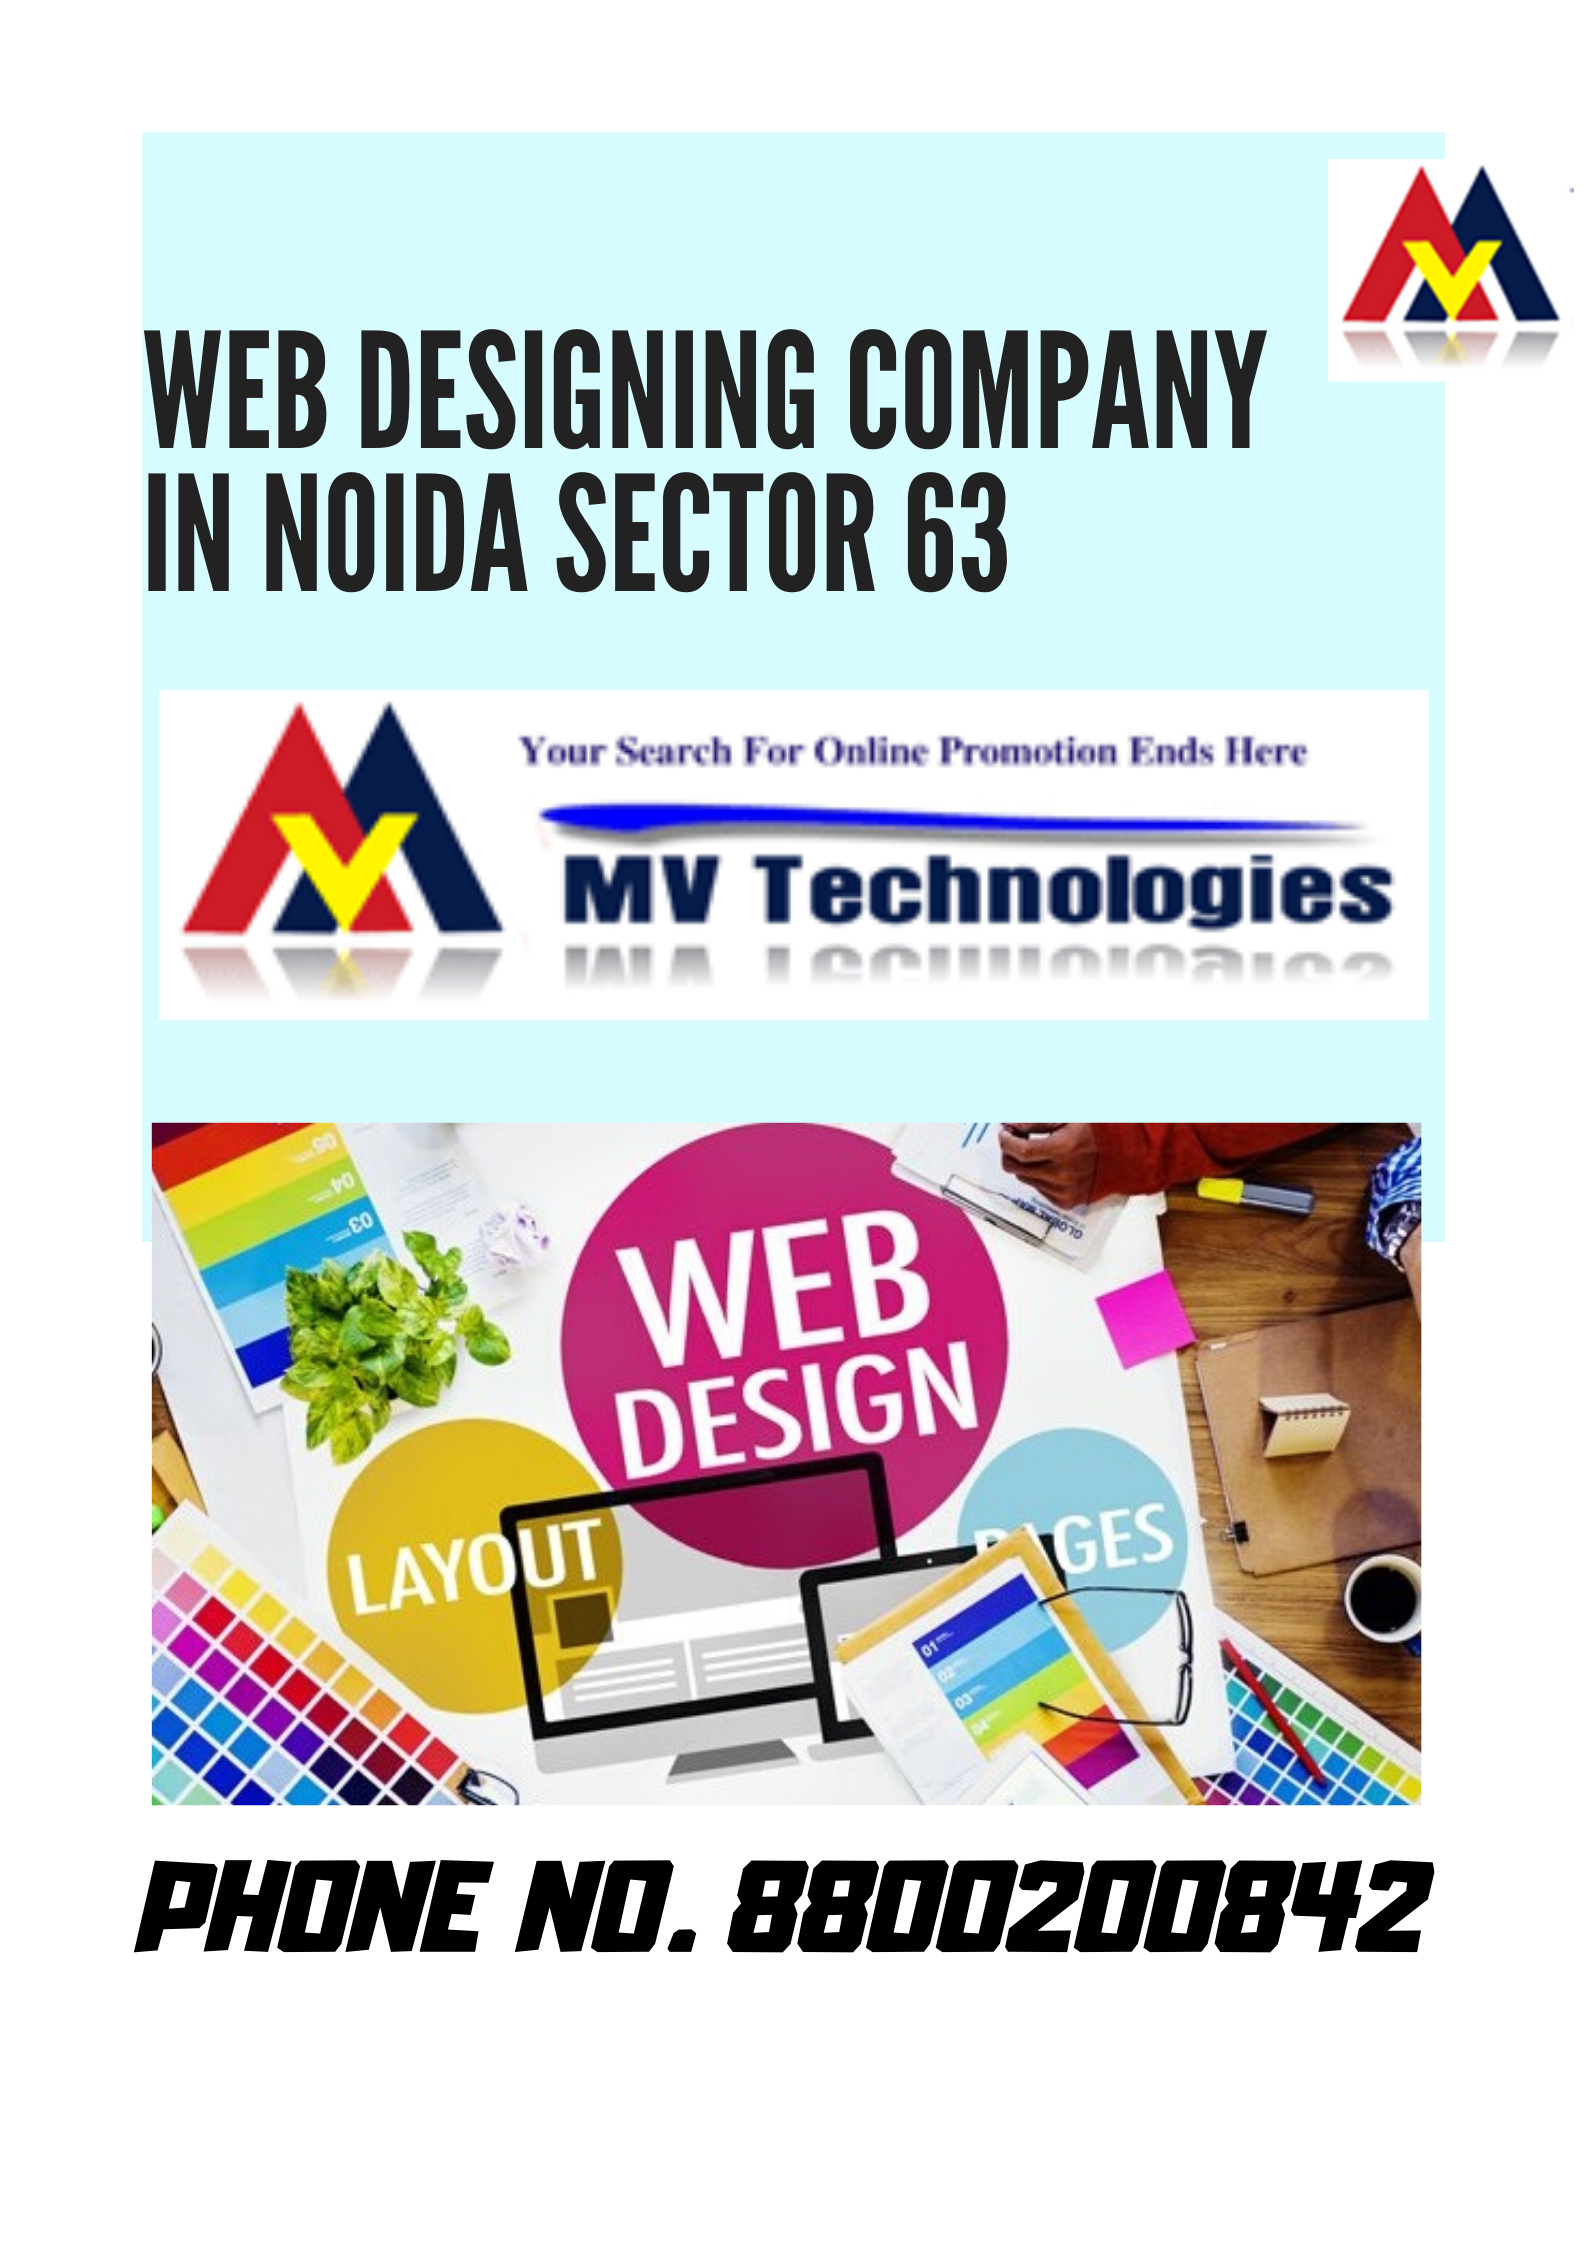 Web Designing Company In Noida Sector 63 In 2020 Web Design Web Design Company Website Design Services